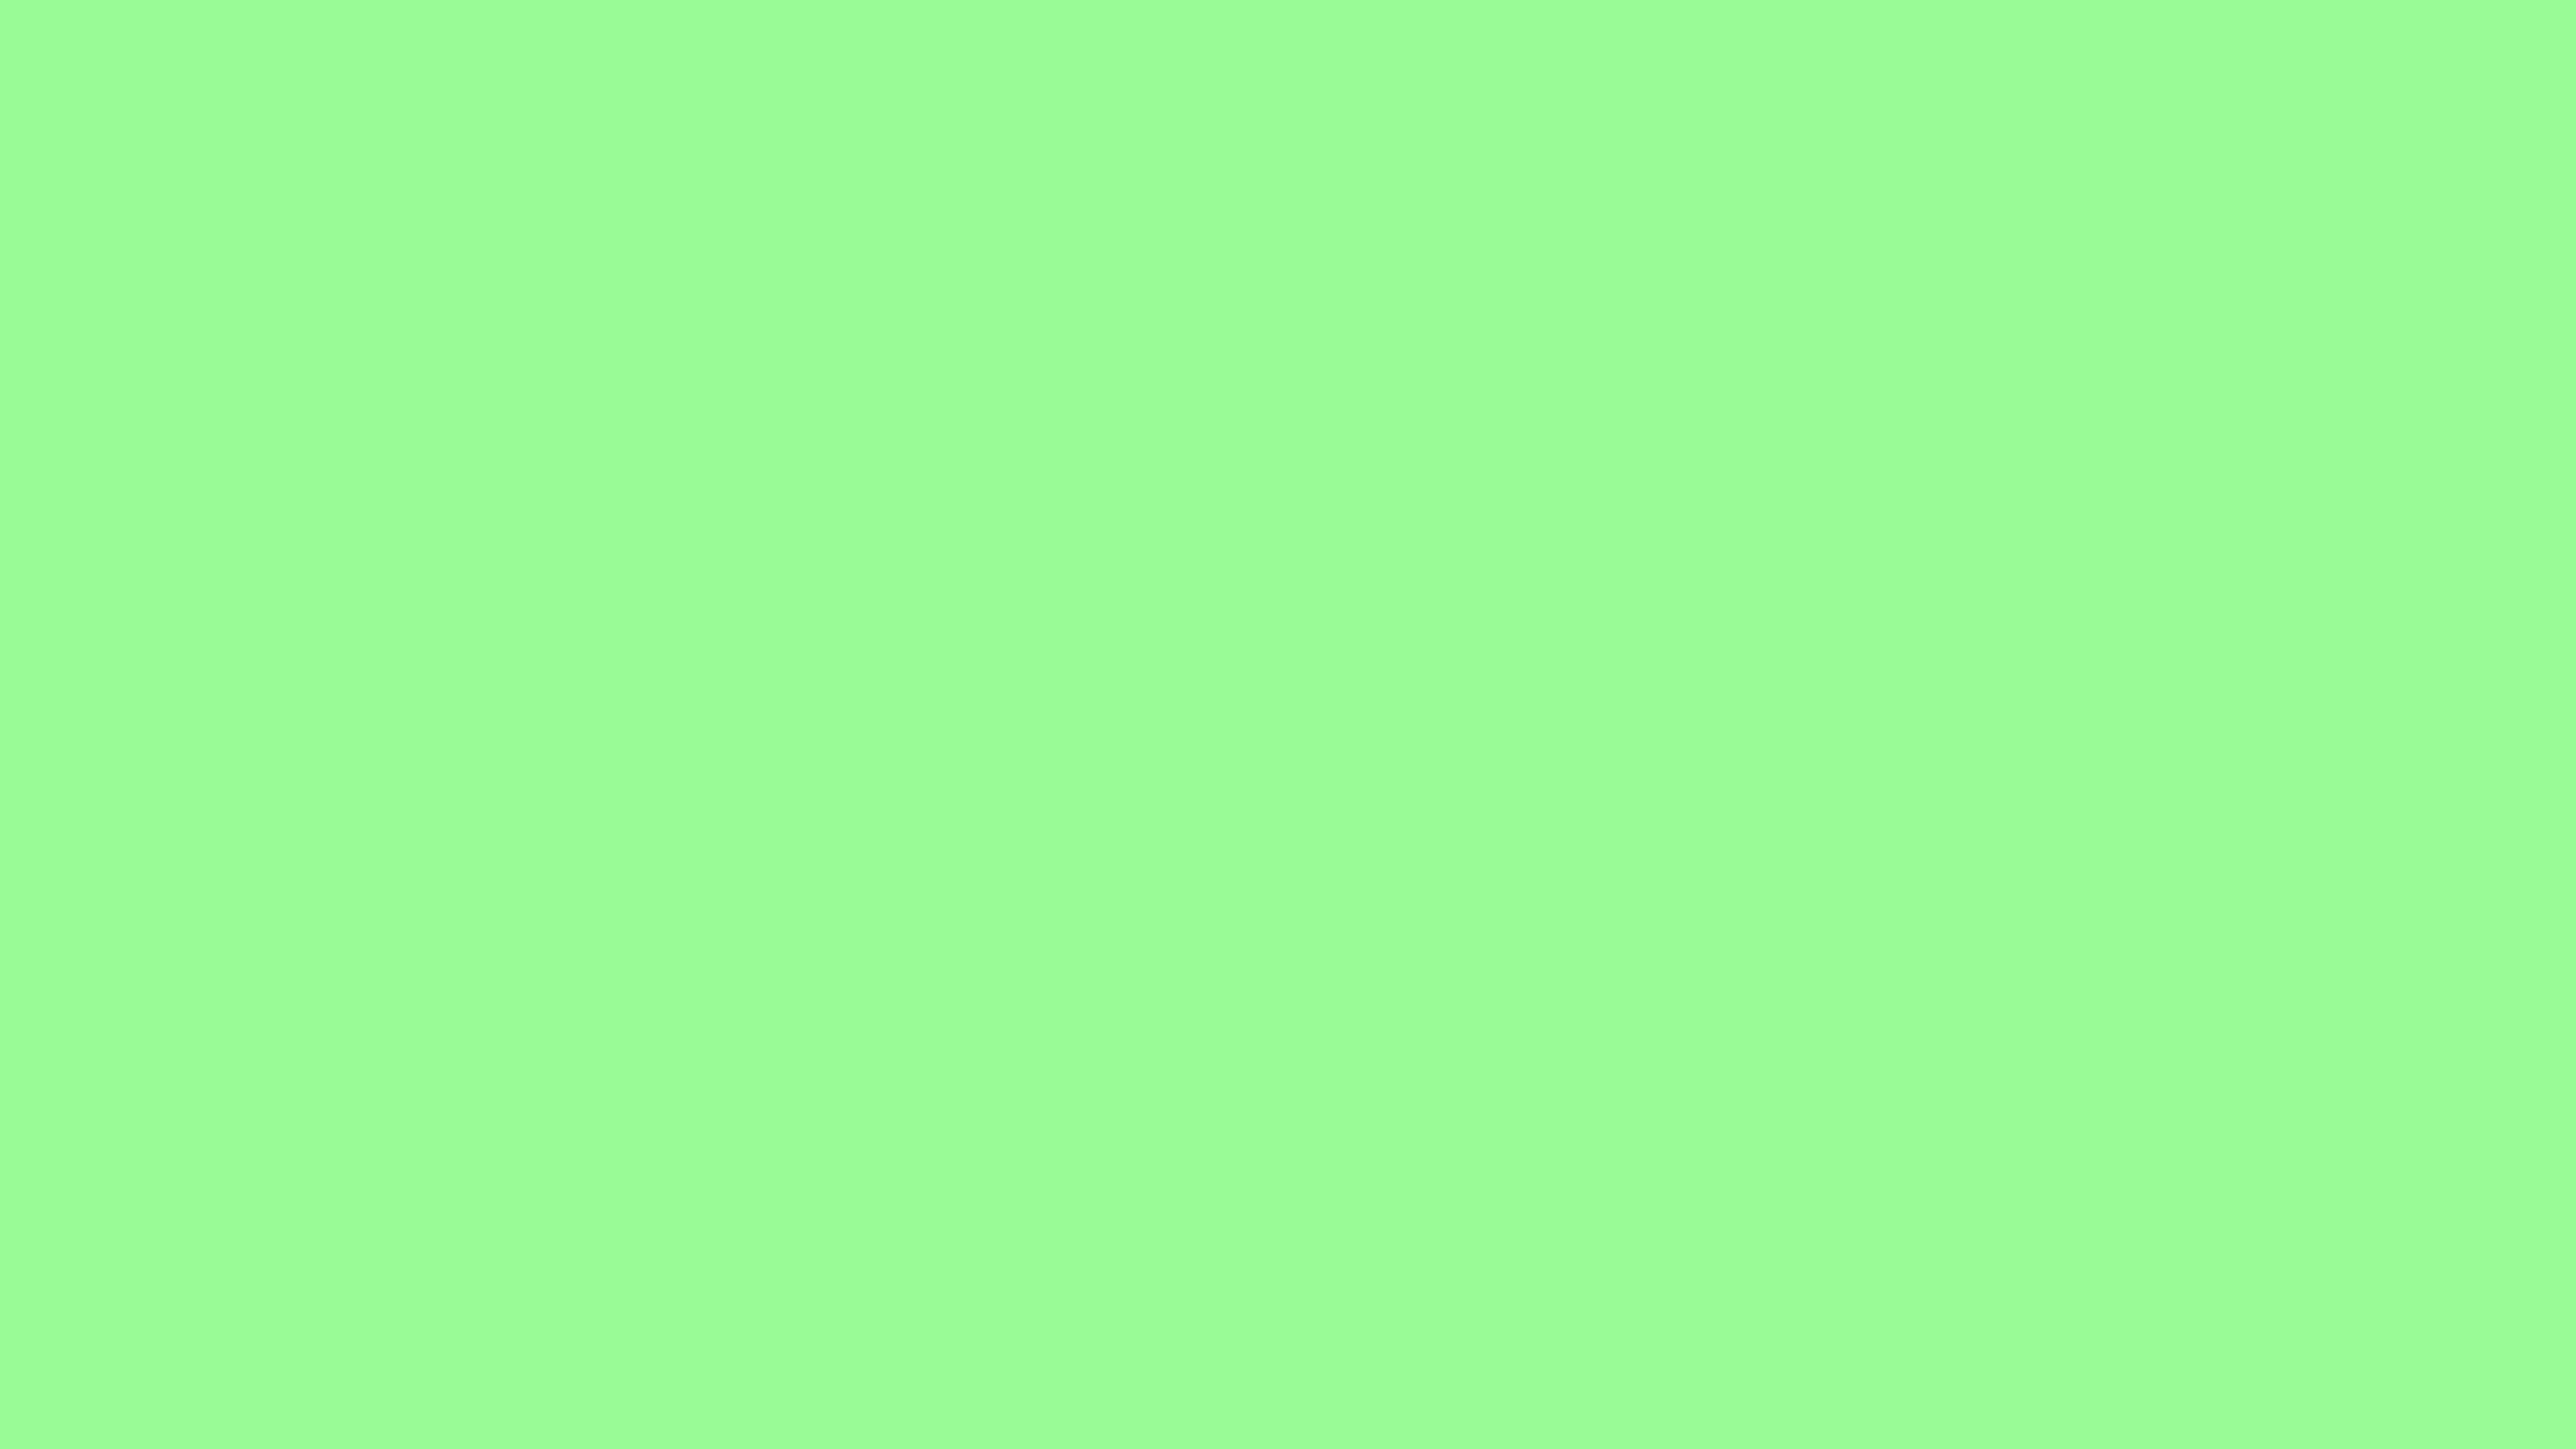 5120x2880 Pale Green Solid Color Background